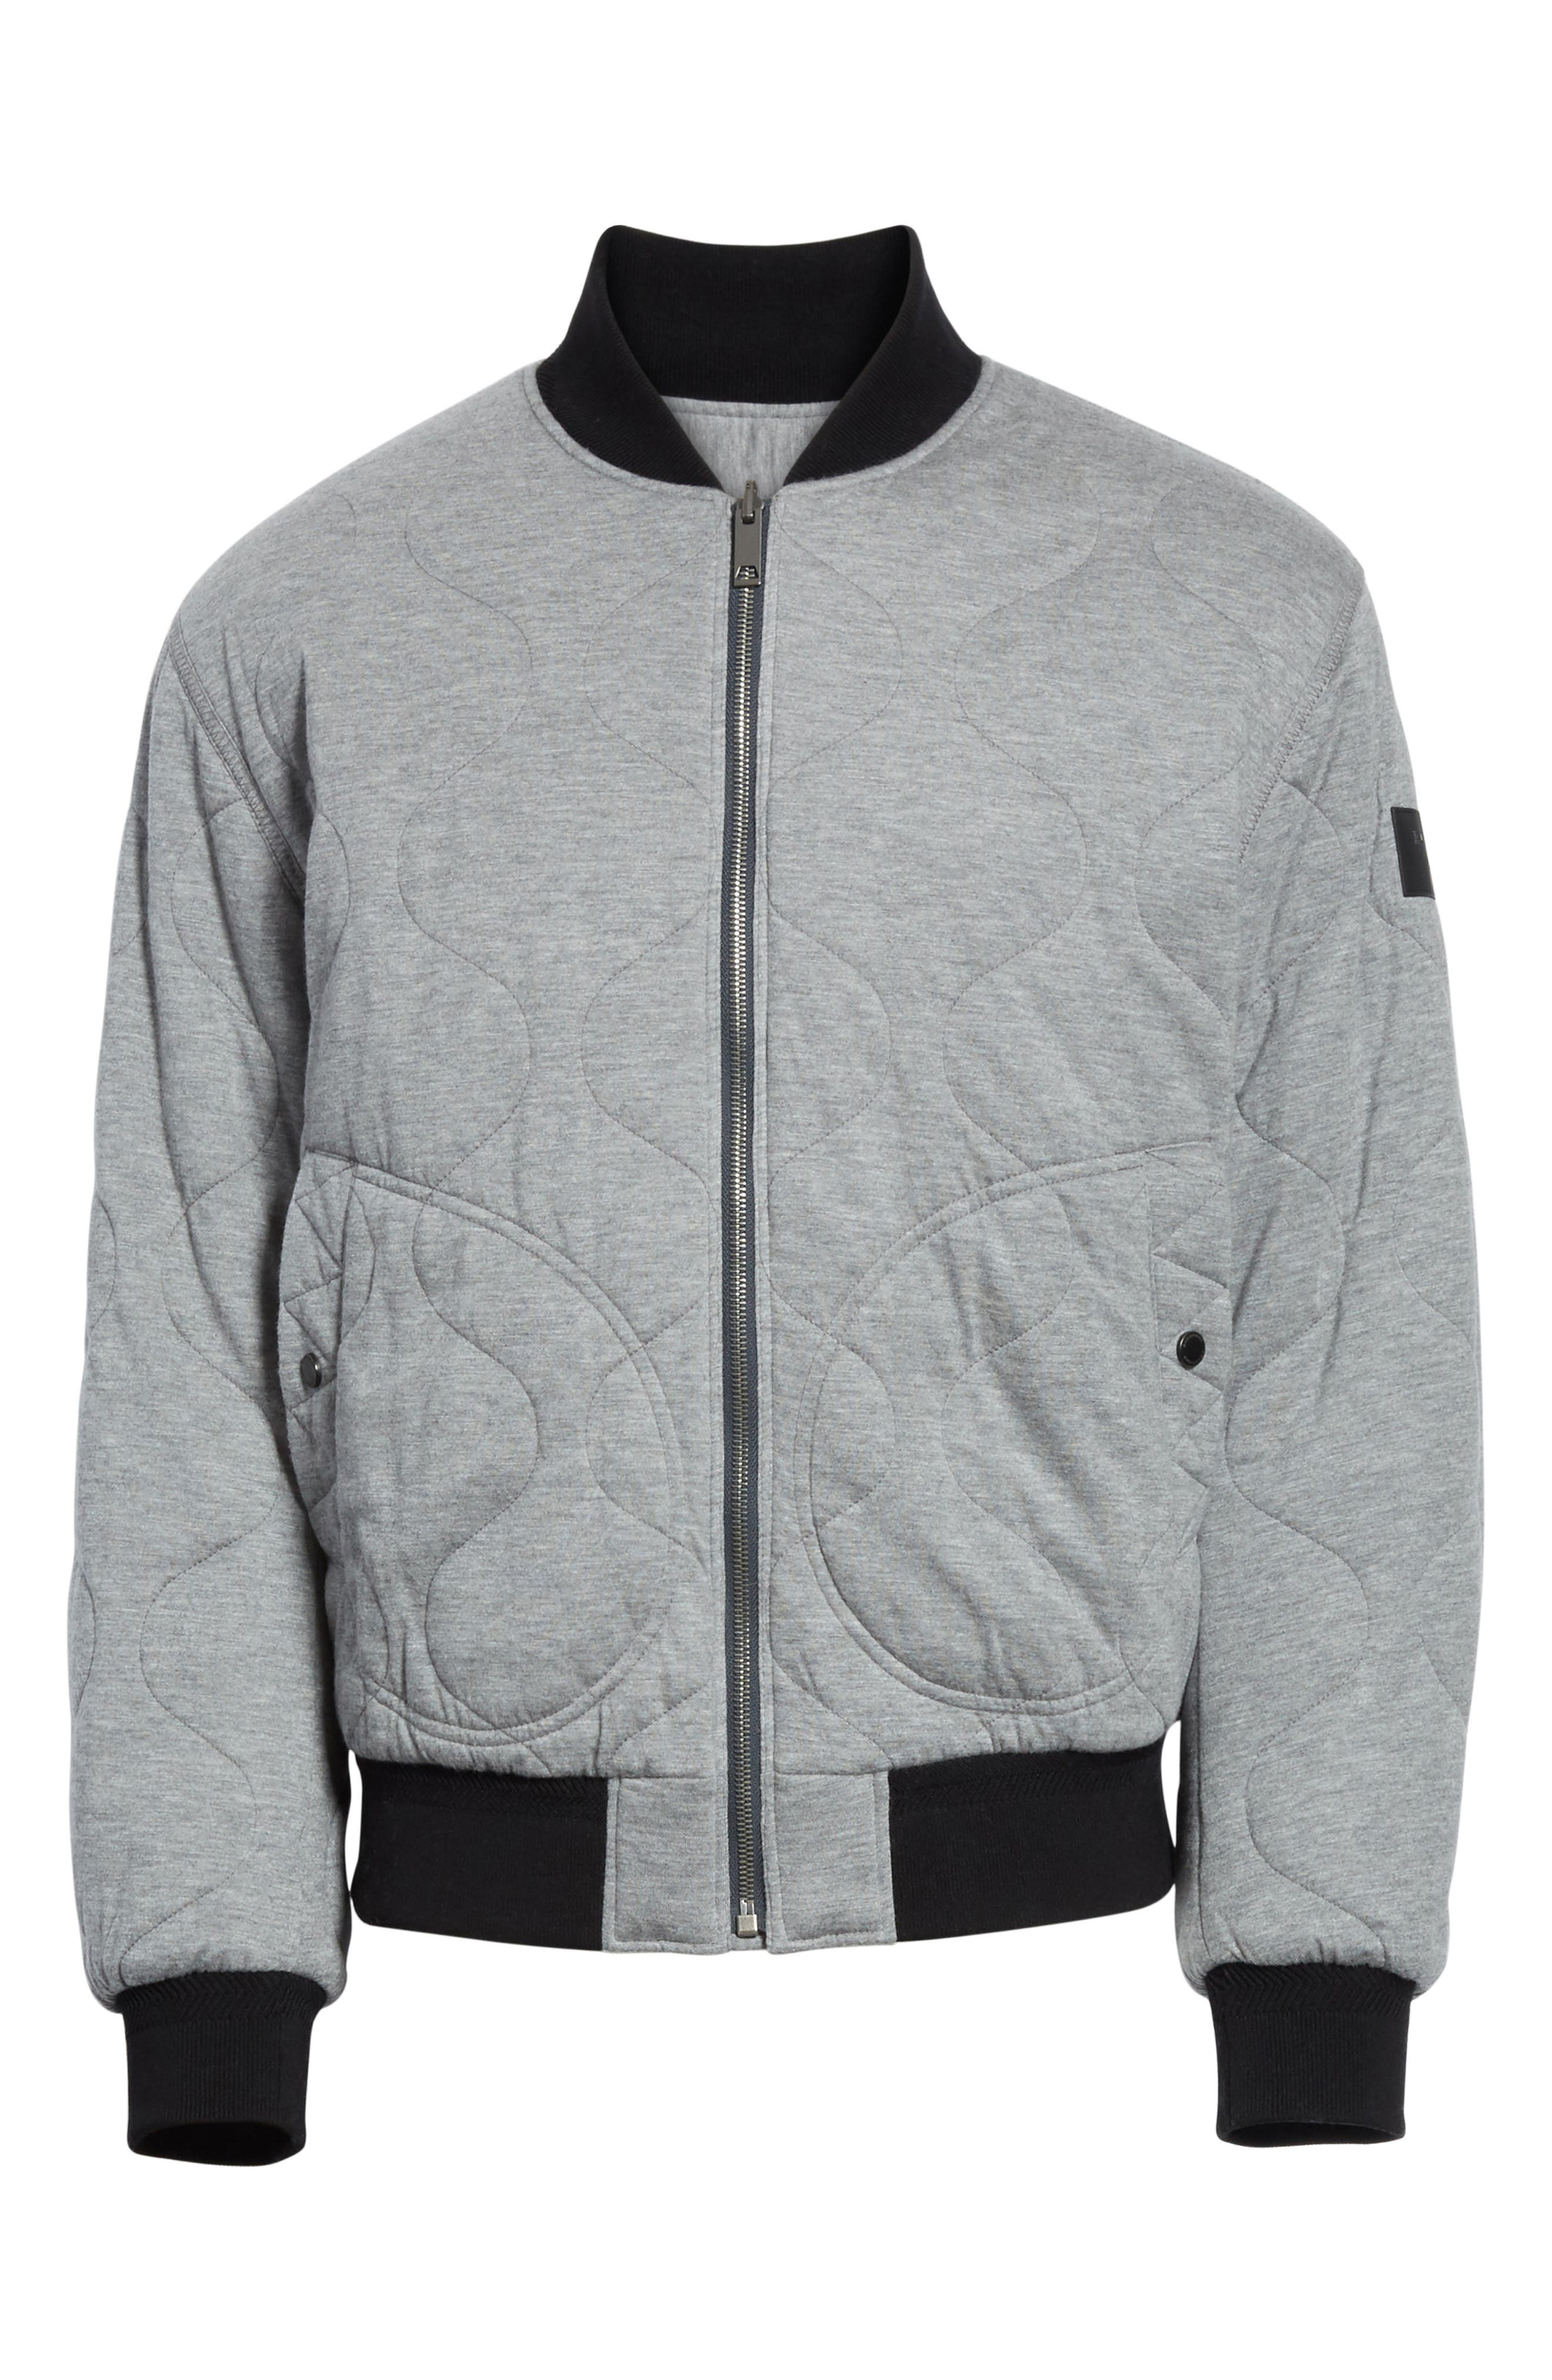 BURBERRY,                             Campton Reversible Quilted Jersey Bomber Jacket,                             Alternate thumbnail 6, color,                             031